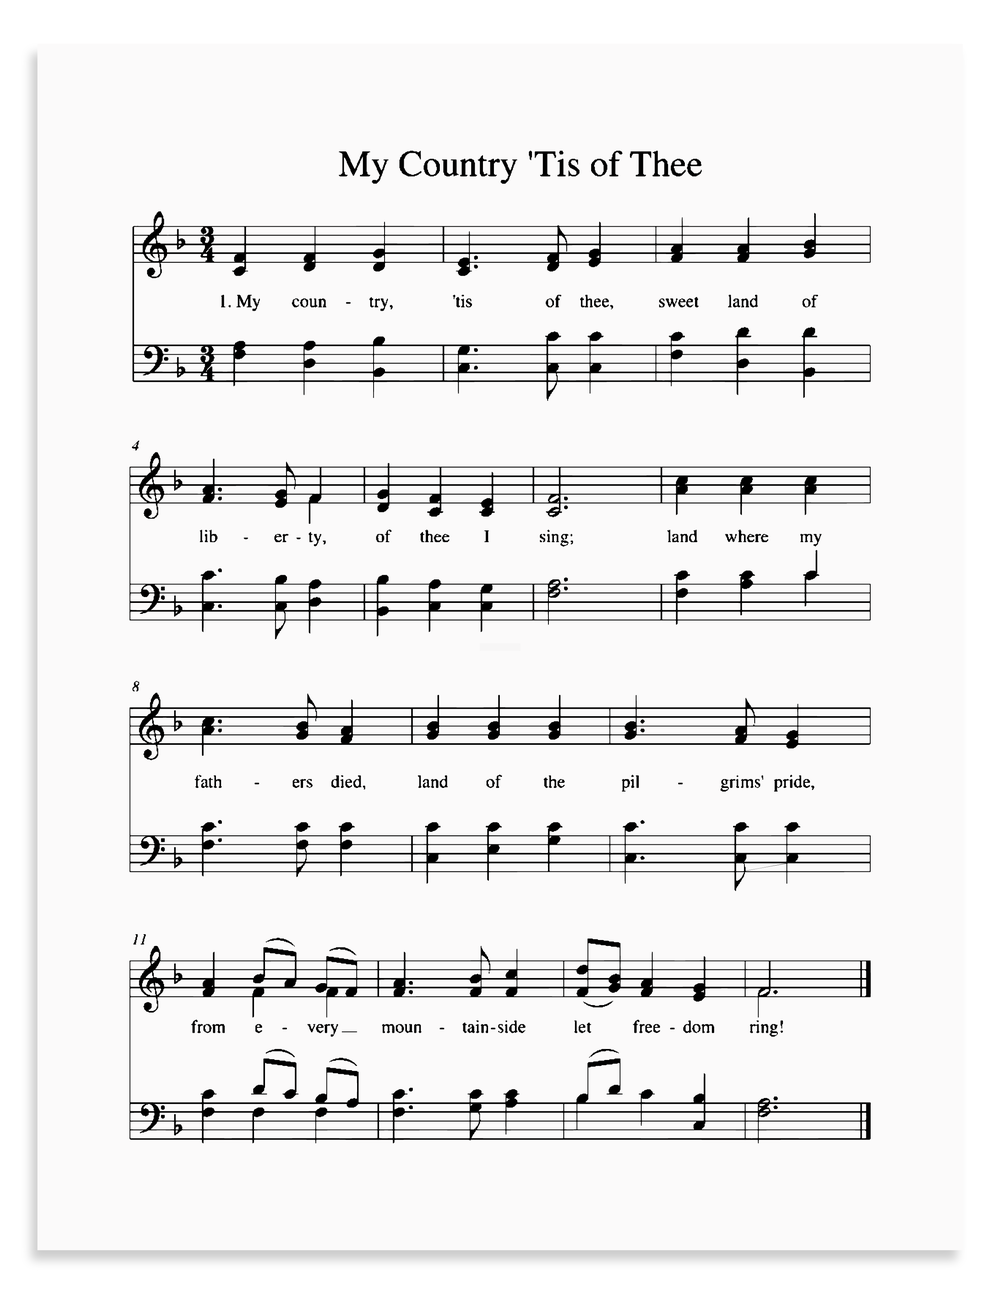 My Country 'Tis of Thee.png